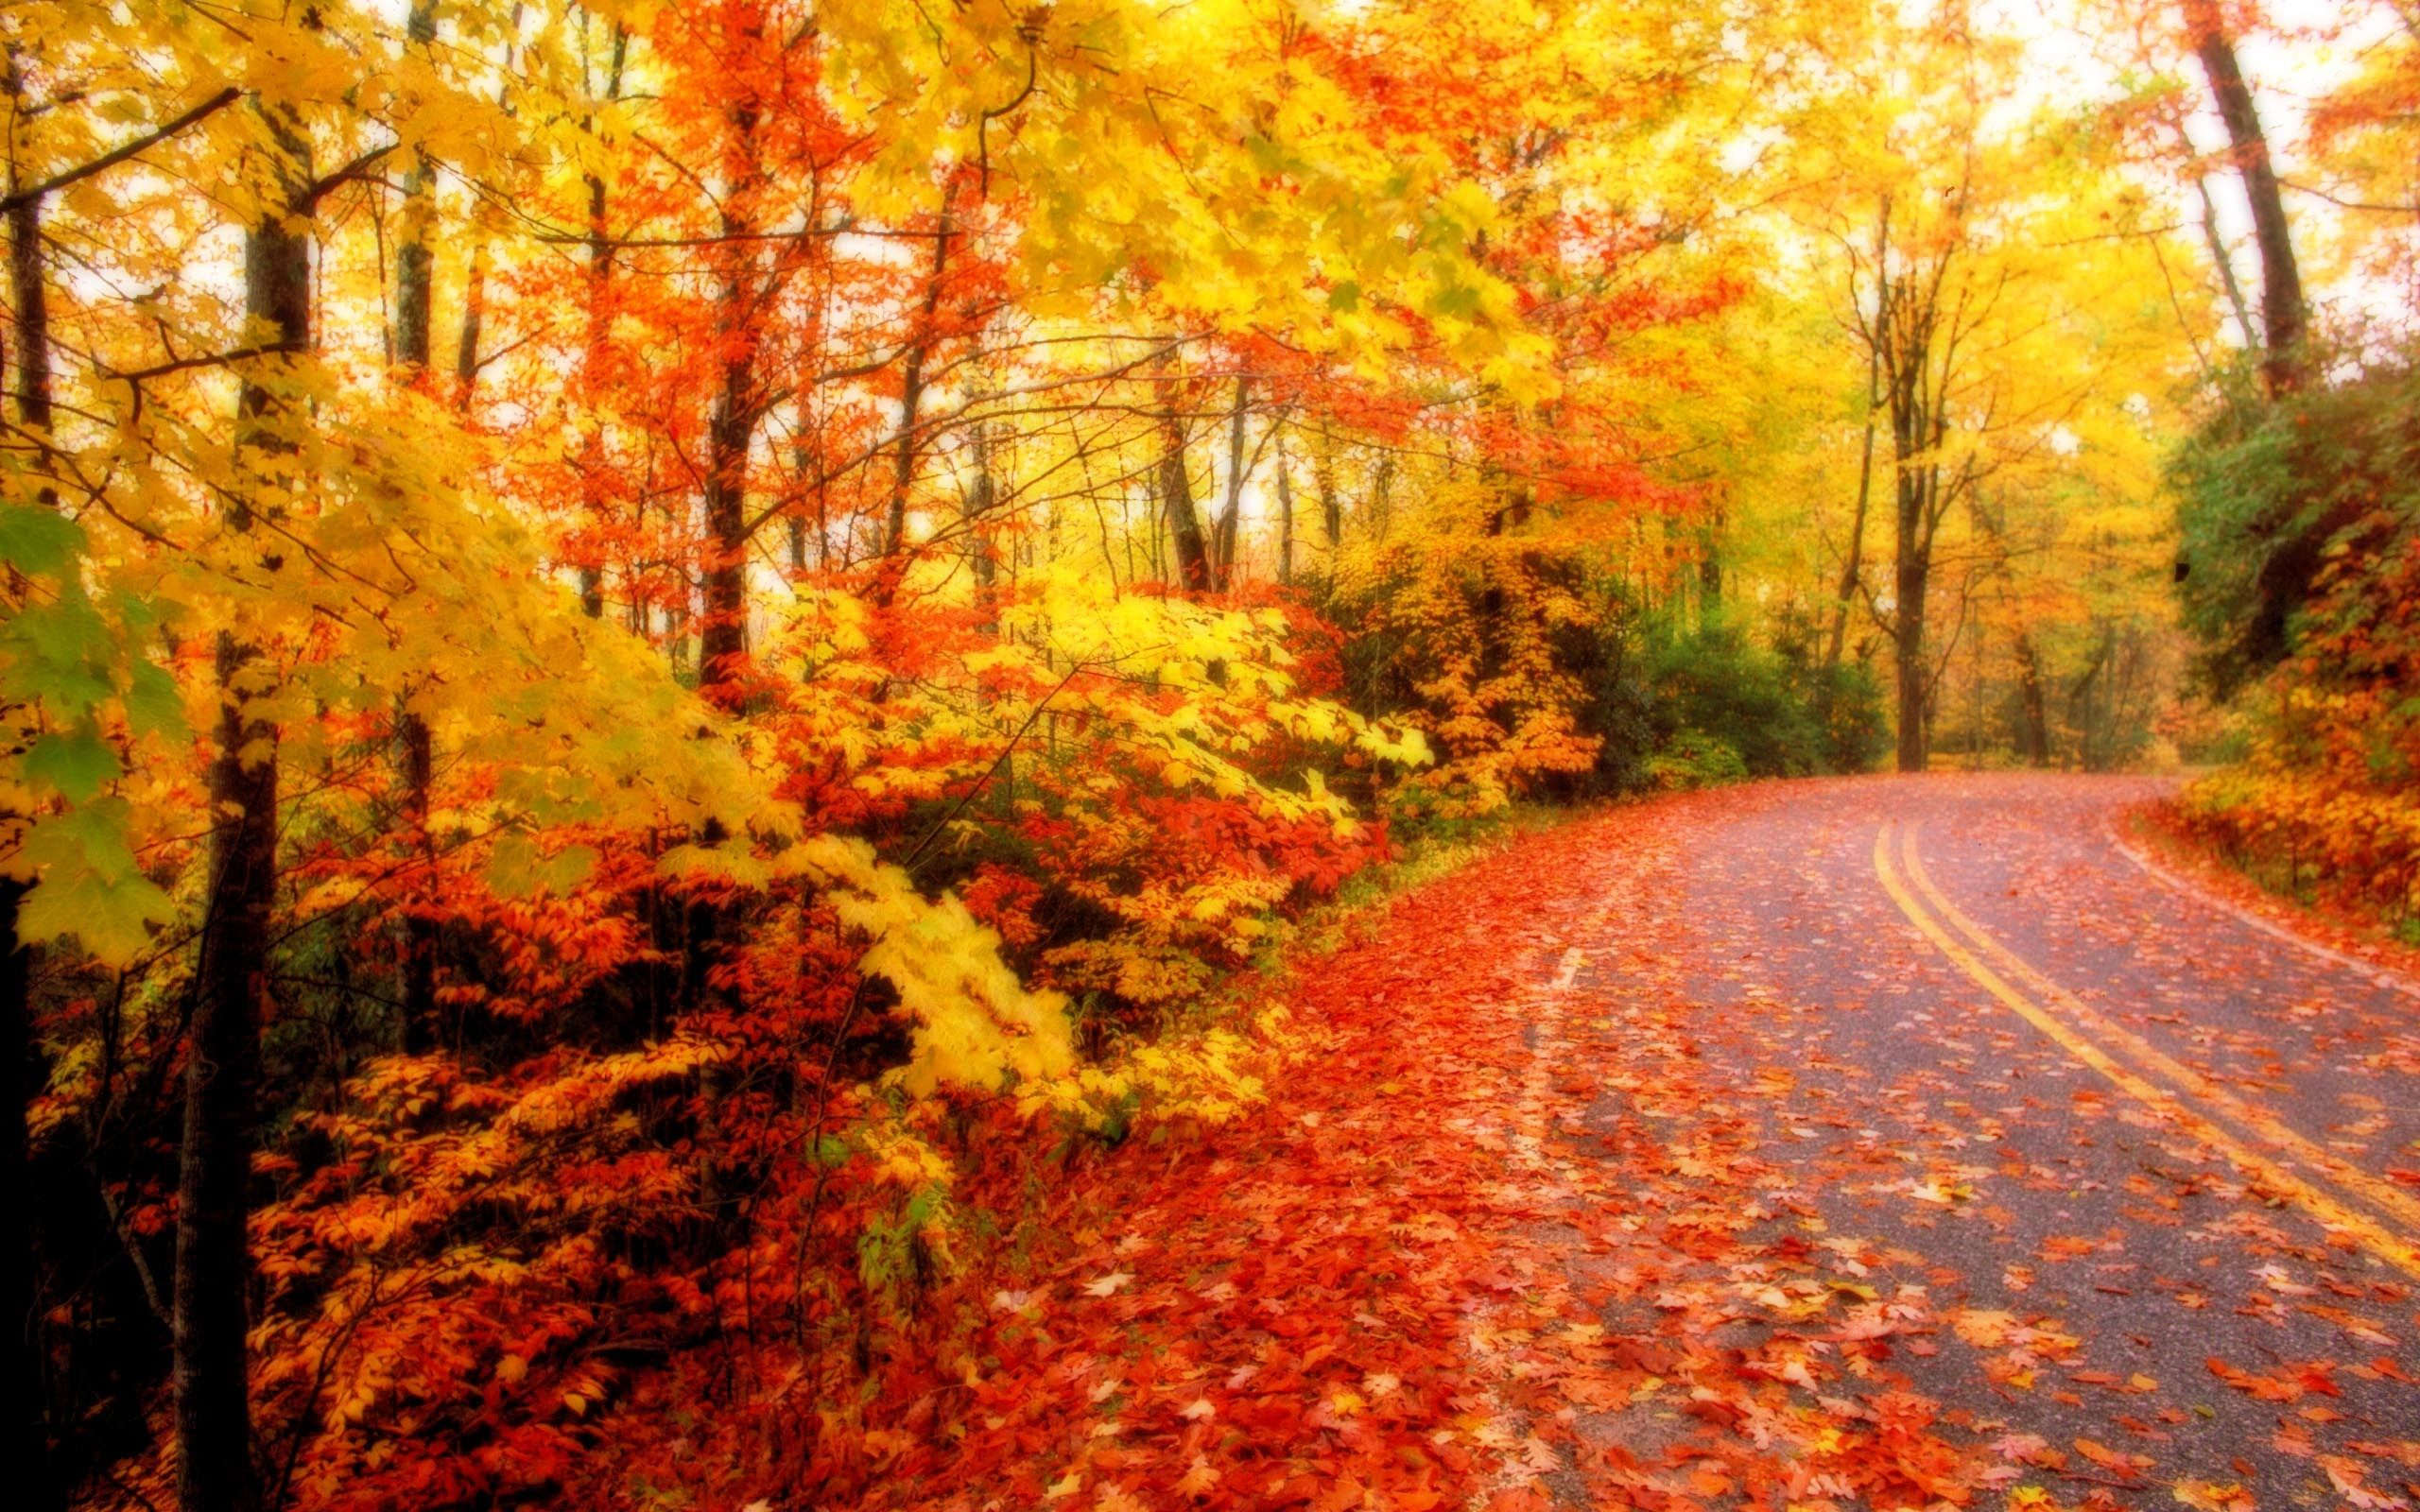 Fall Wallpapers For Desktop In 2020 Autumn Scenery Scenery Fall Foliage